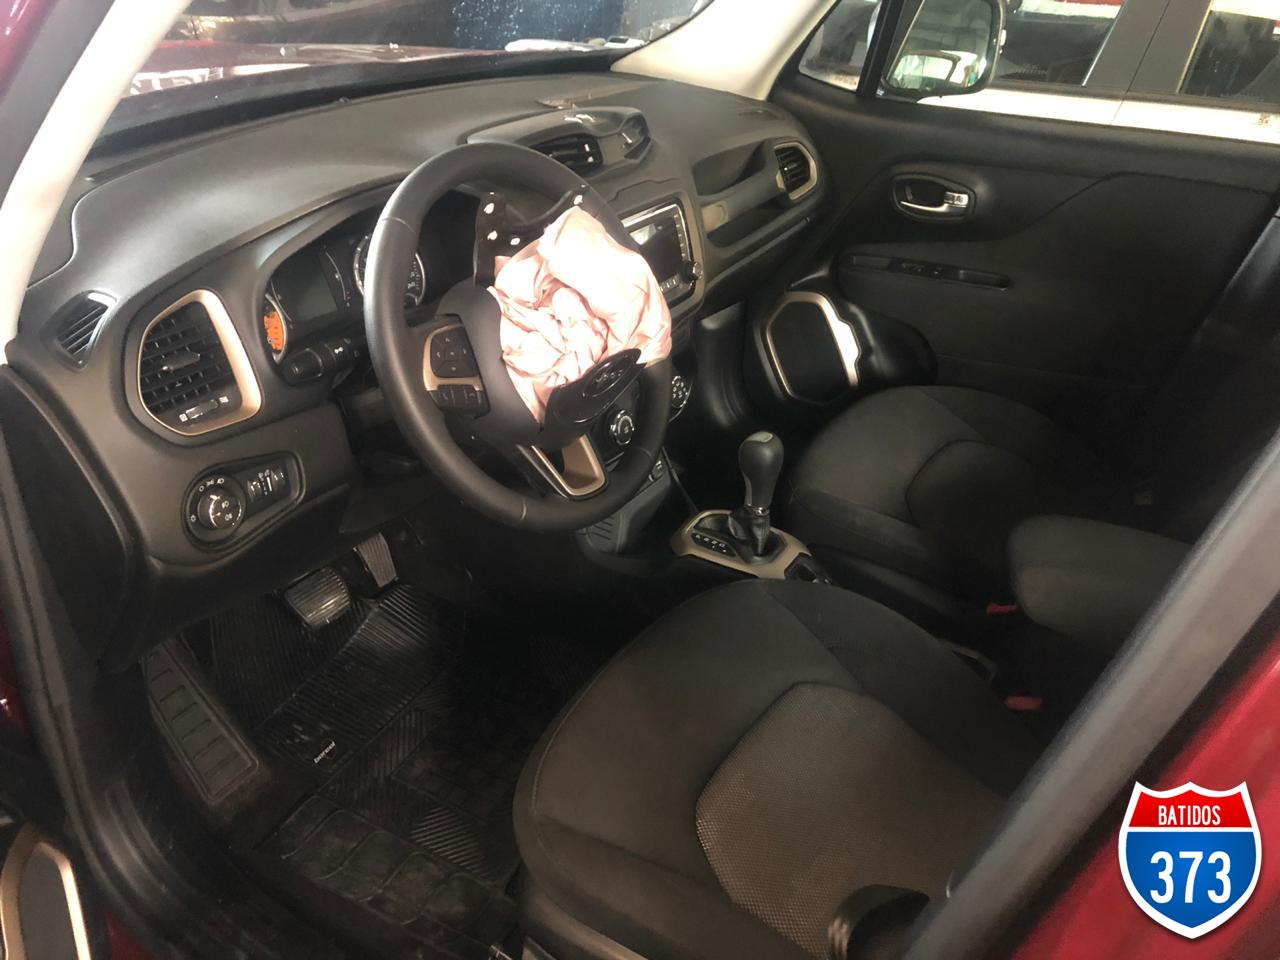 JEEP Renegade Sport 1.8 At  2018 Batido, Foto 16323